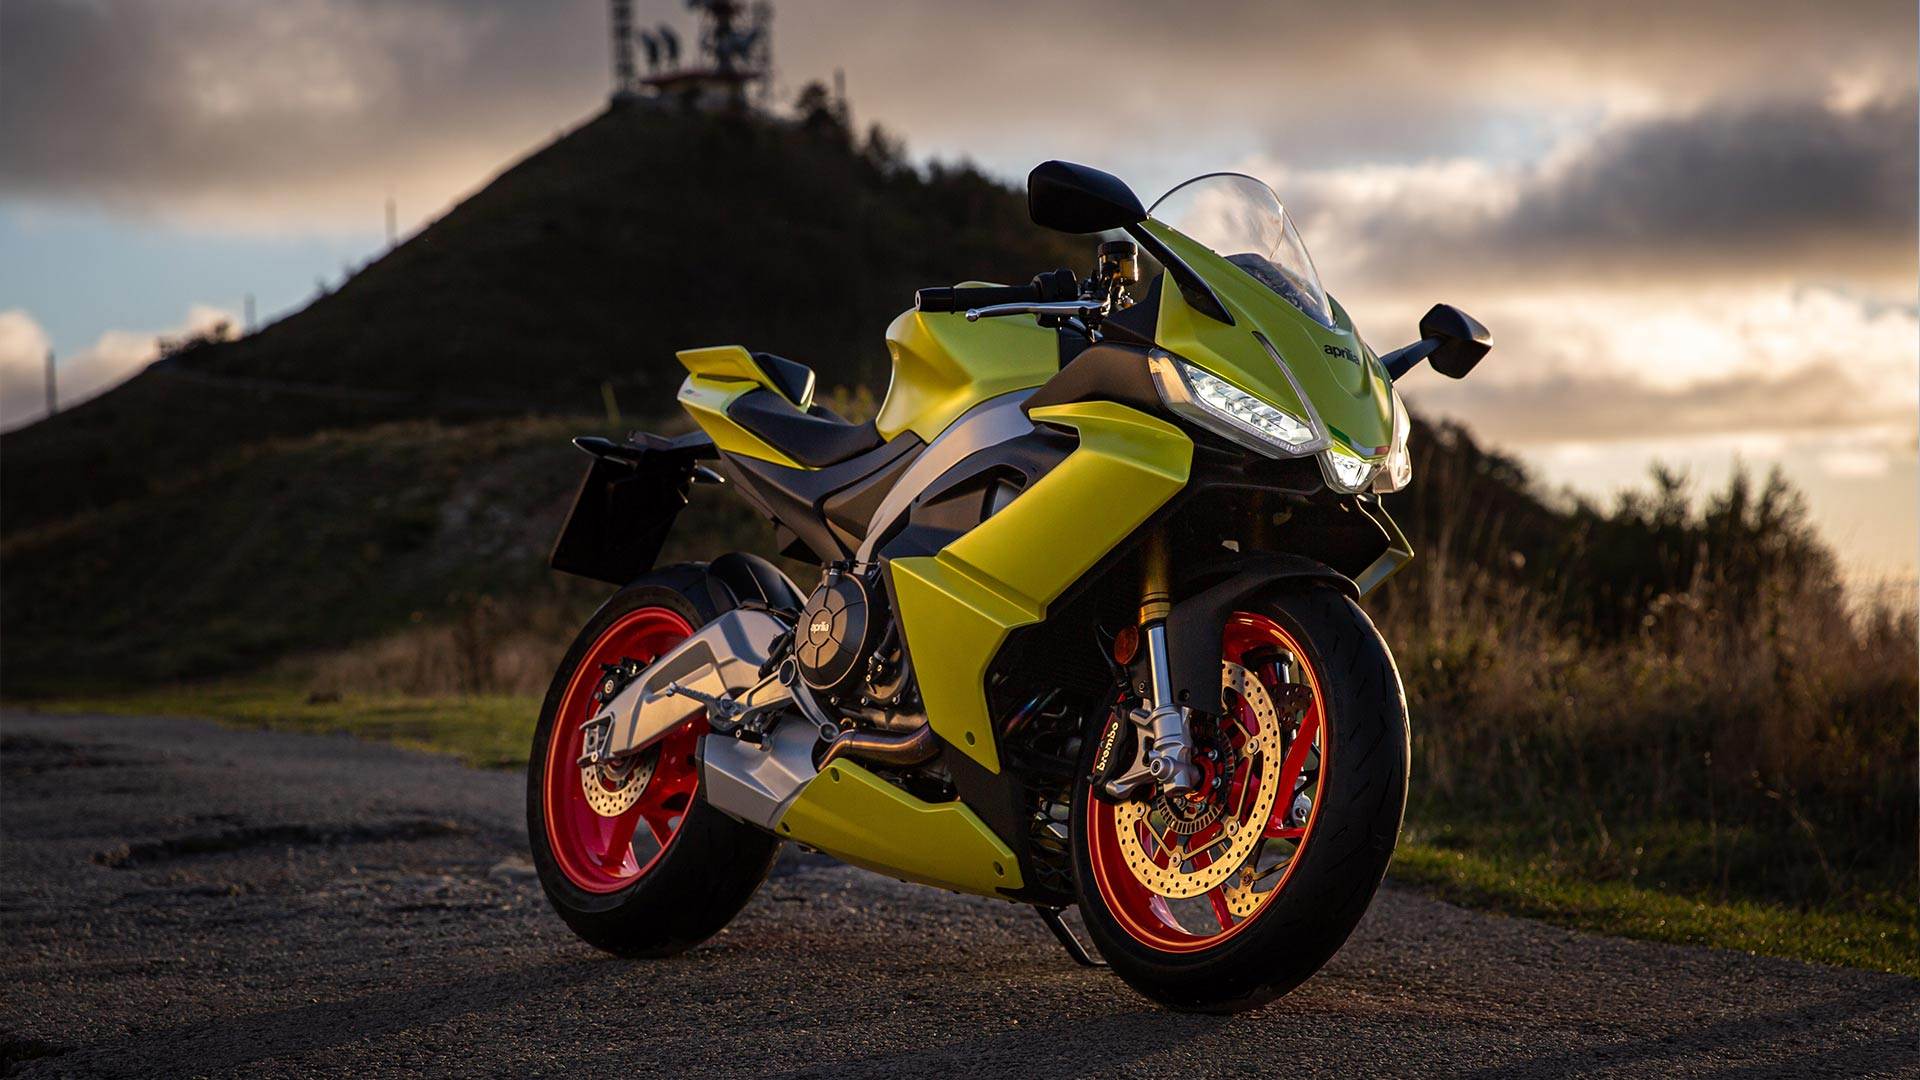 Aprilia RS 660 Specifications, Features and Price Revealed!